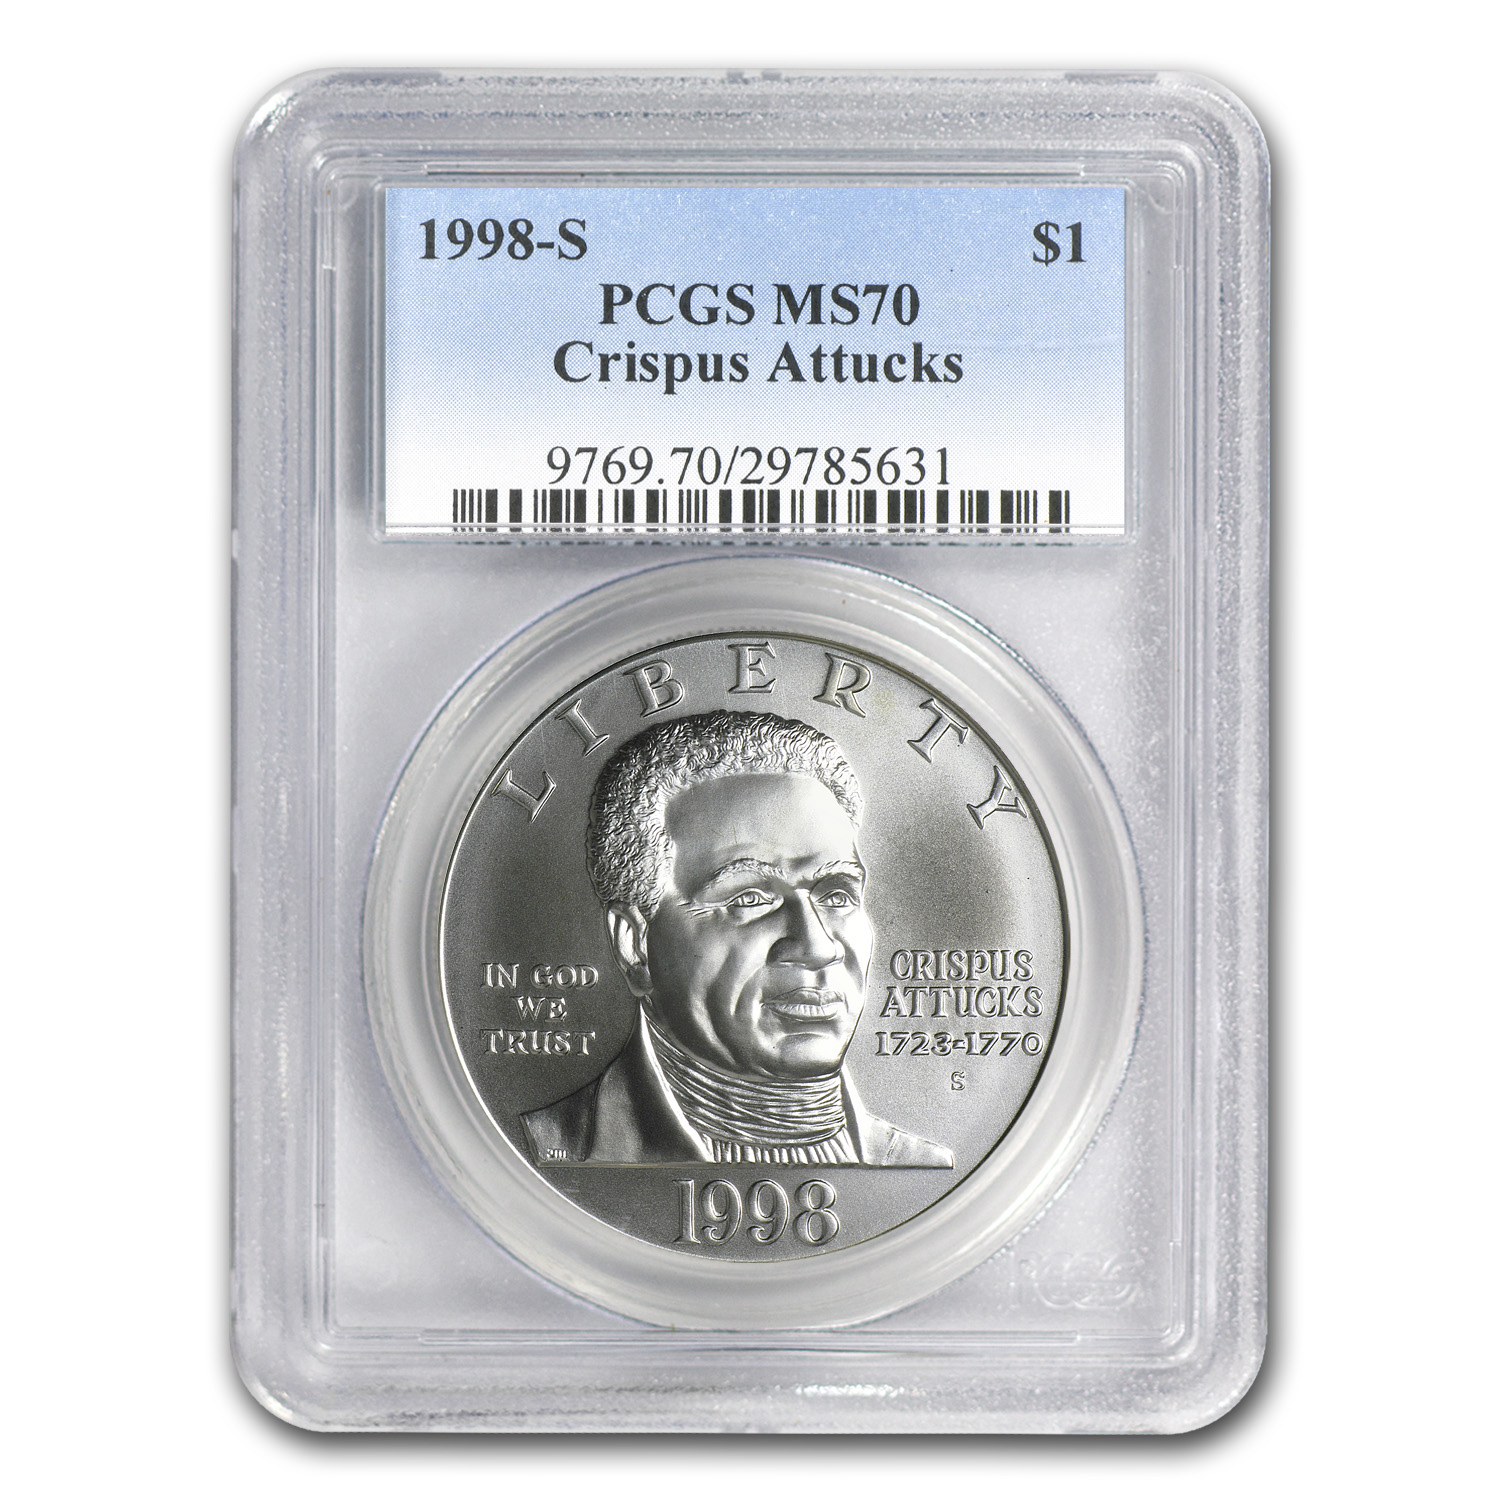 1998-S Black Patriots $1 Silver Commem MS-70 PCGS